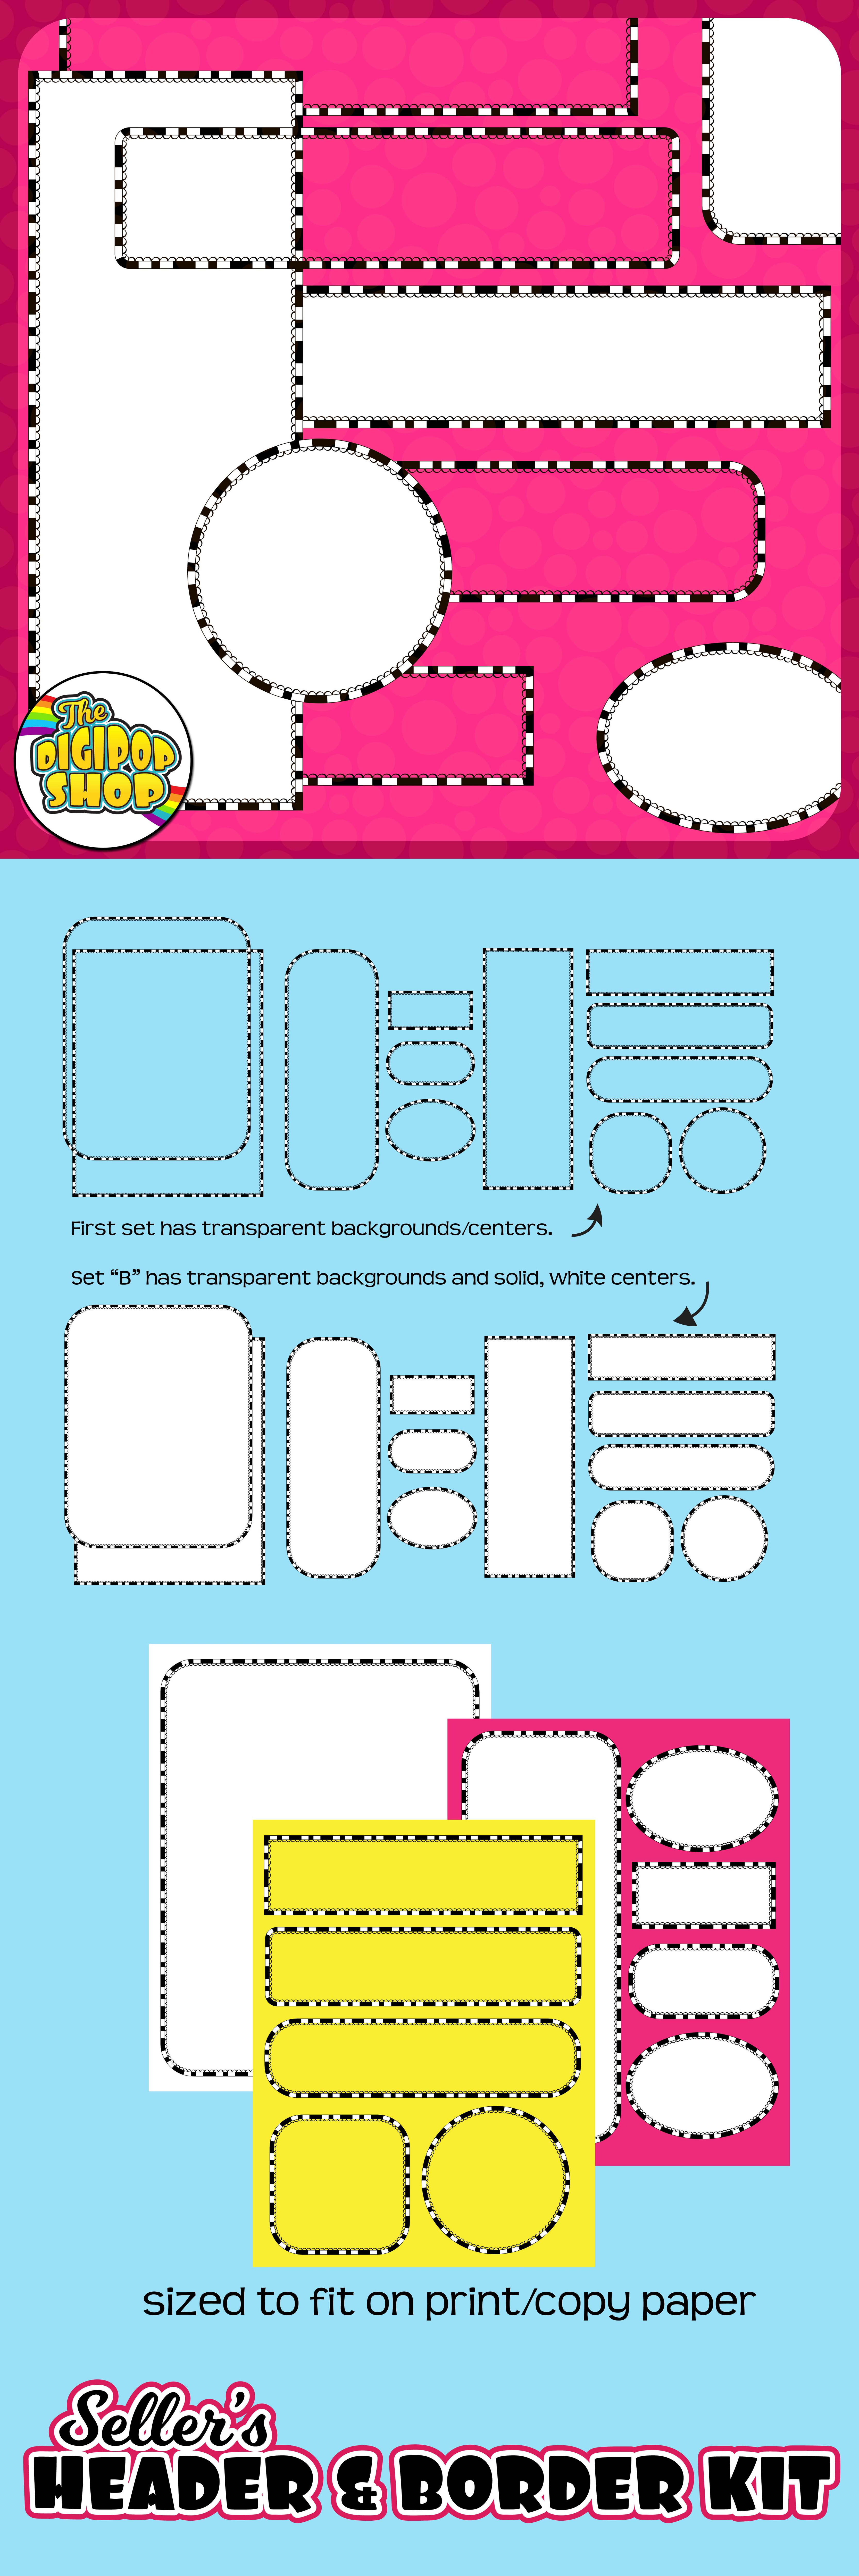 Digital Frame Set For Laying Out Worksheets And Tpt